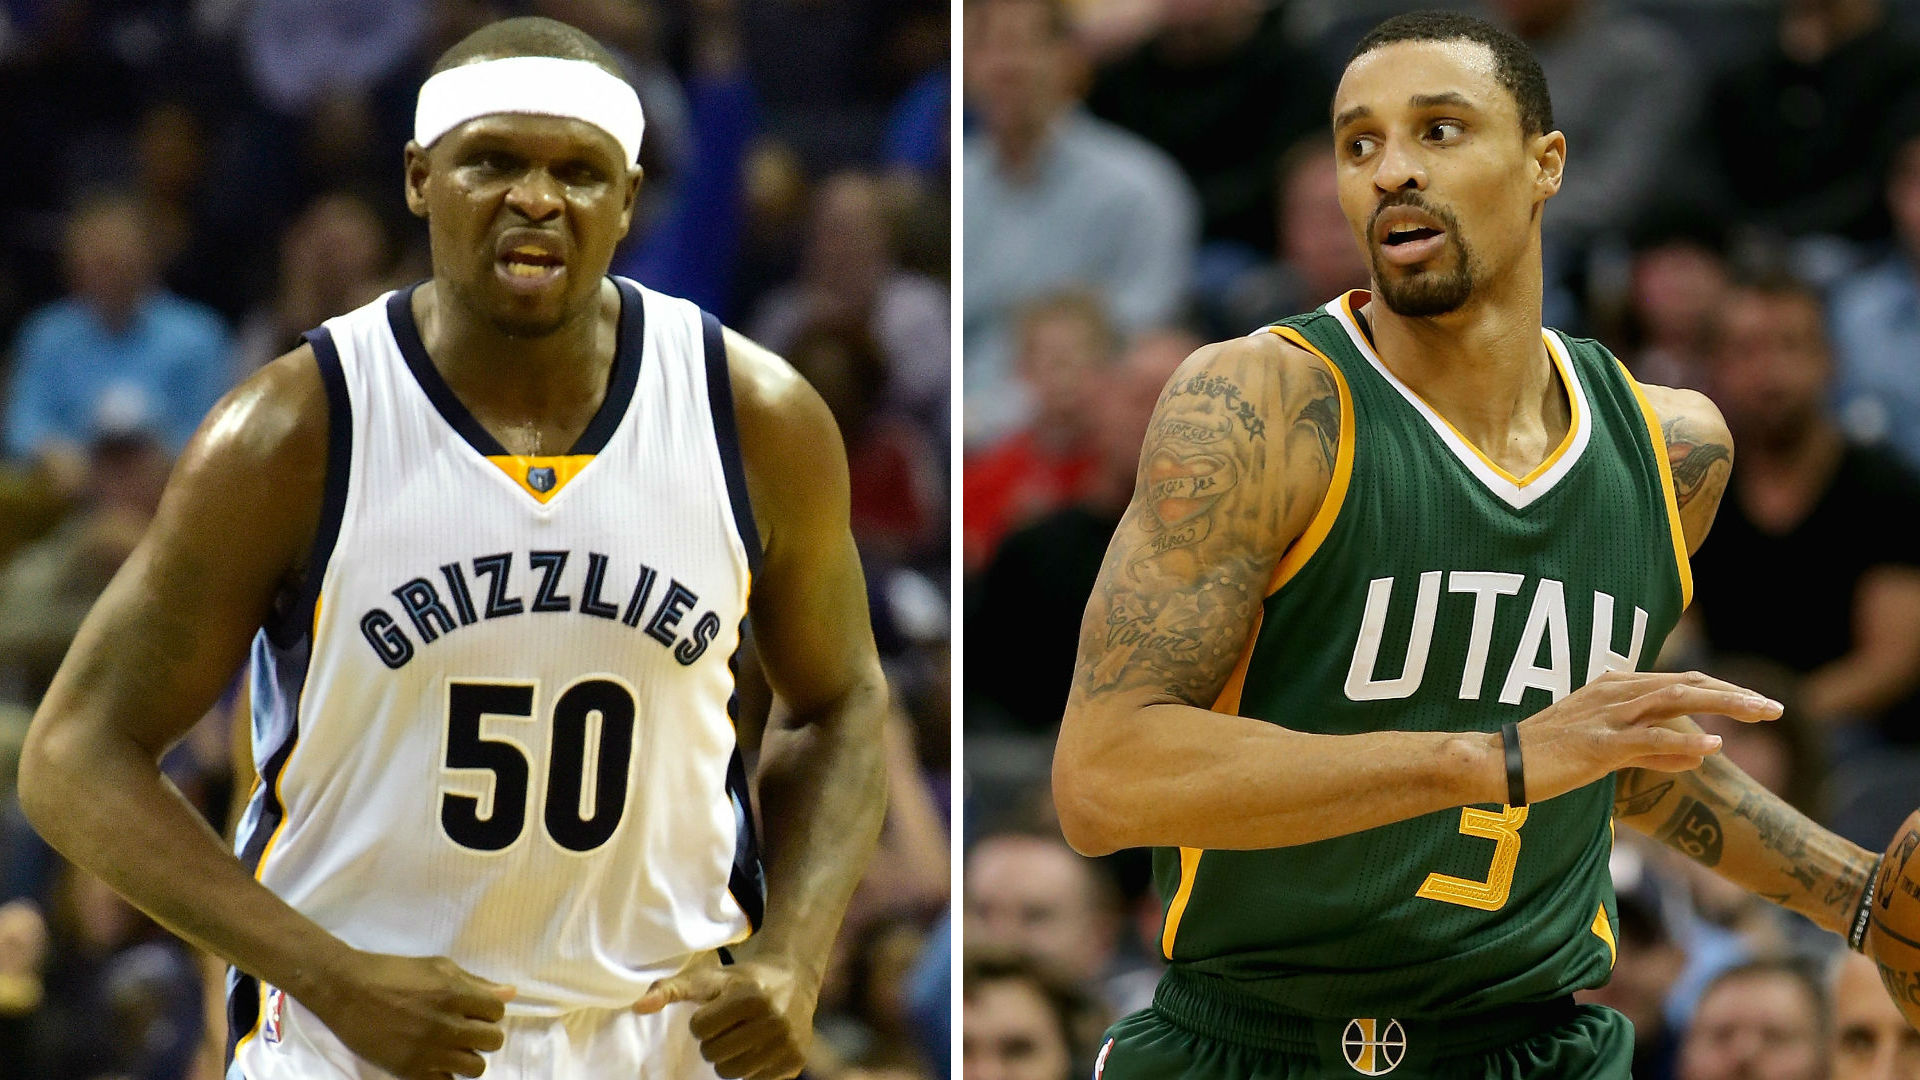 George Hill and Zach Randolph deals are a mixed bag for Kings